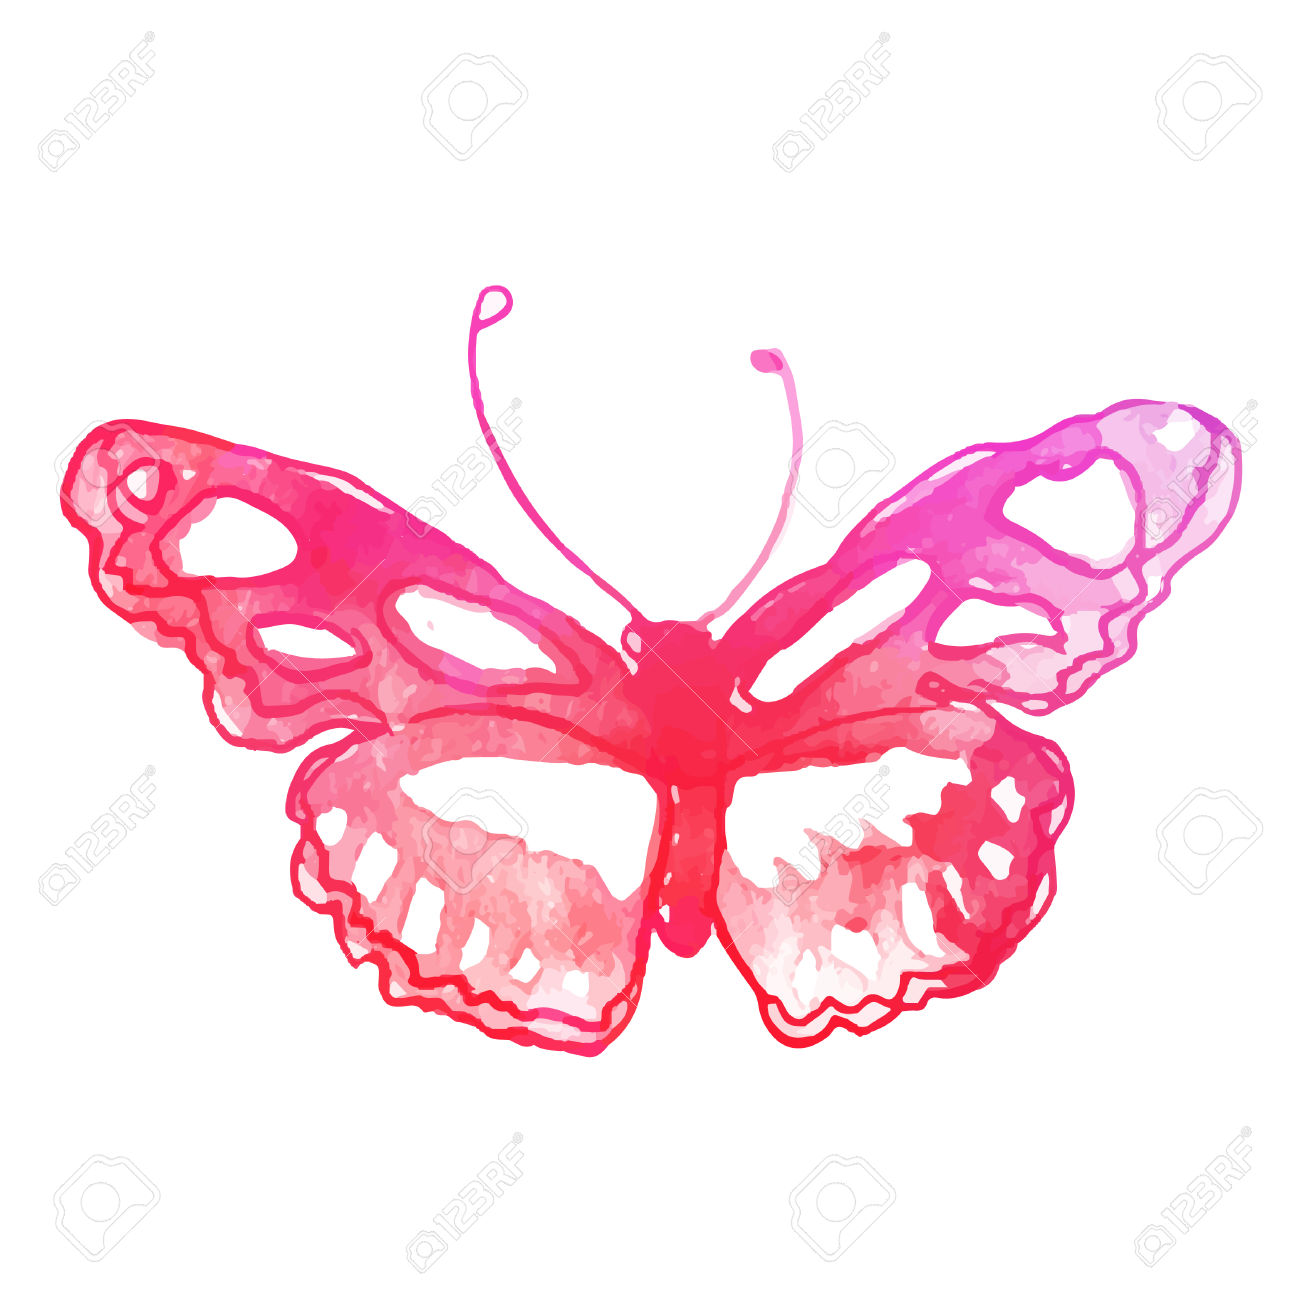 Watercolor butterfly free clipart image stock Watercolor butterfly free clipart - ClipartFest image stock